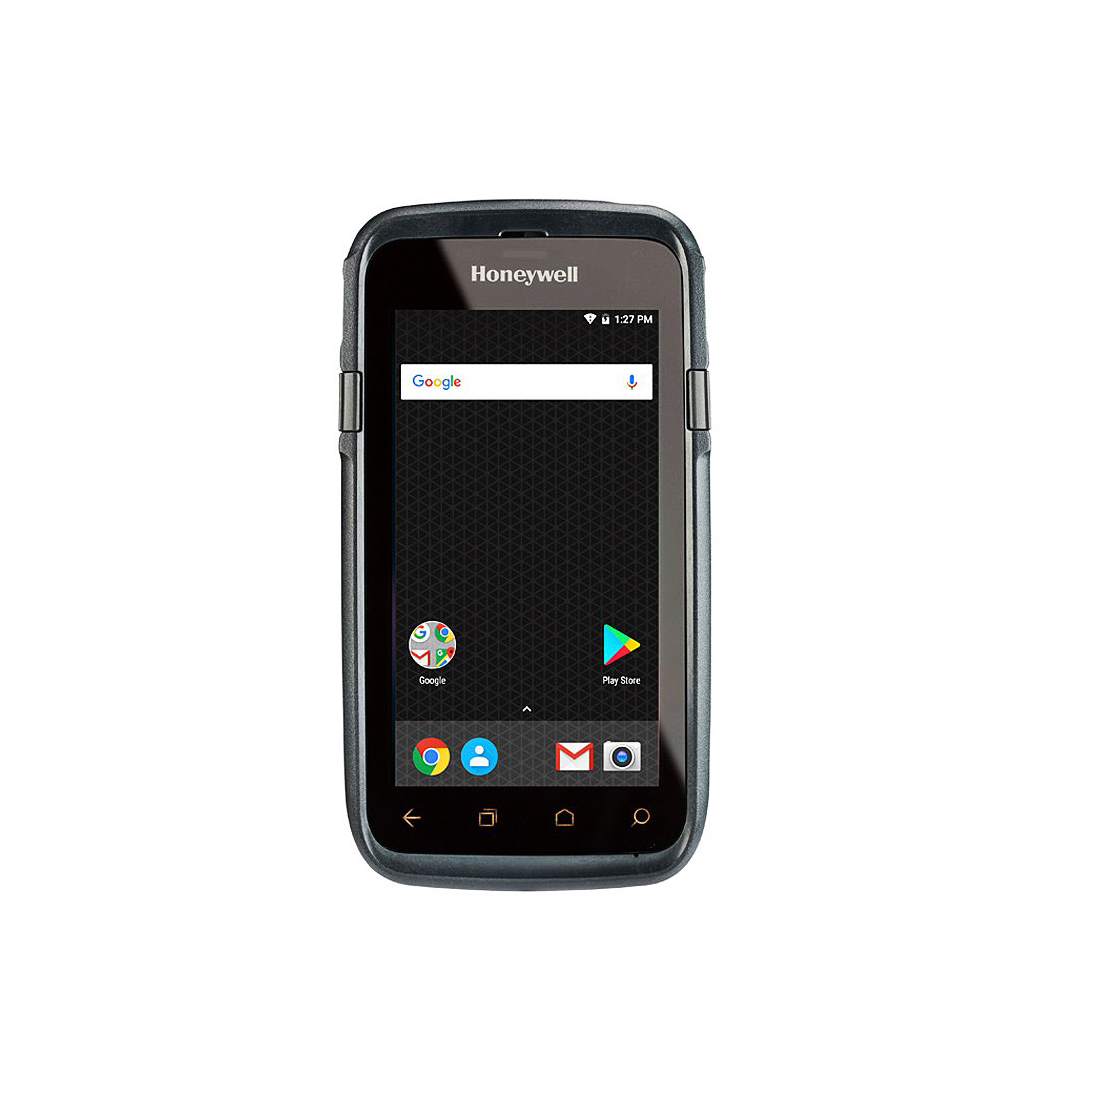 Terminal mobil Honeywell Dolphin CT60, Android 7.1.1, Non-GMS, WLAN, 802.11 a/b/g/n/ac/r/k/mc, 1D/2D Imager SR(N6603), 3GB/32GB memorie, 13MP Camera, BT 5.0, NFC, Baterie 4,040 mAh, ETSI